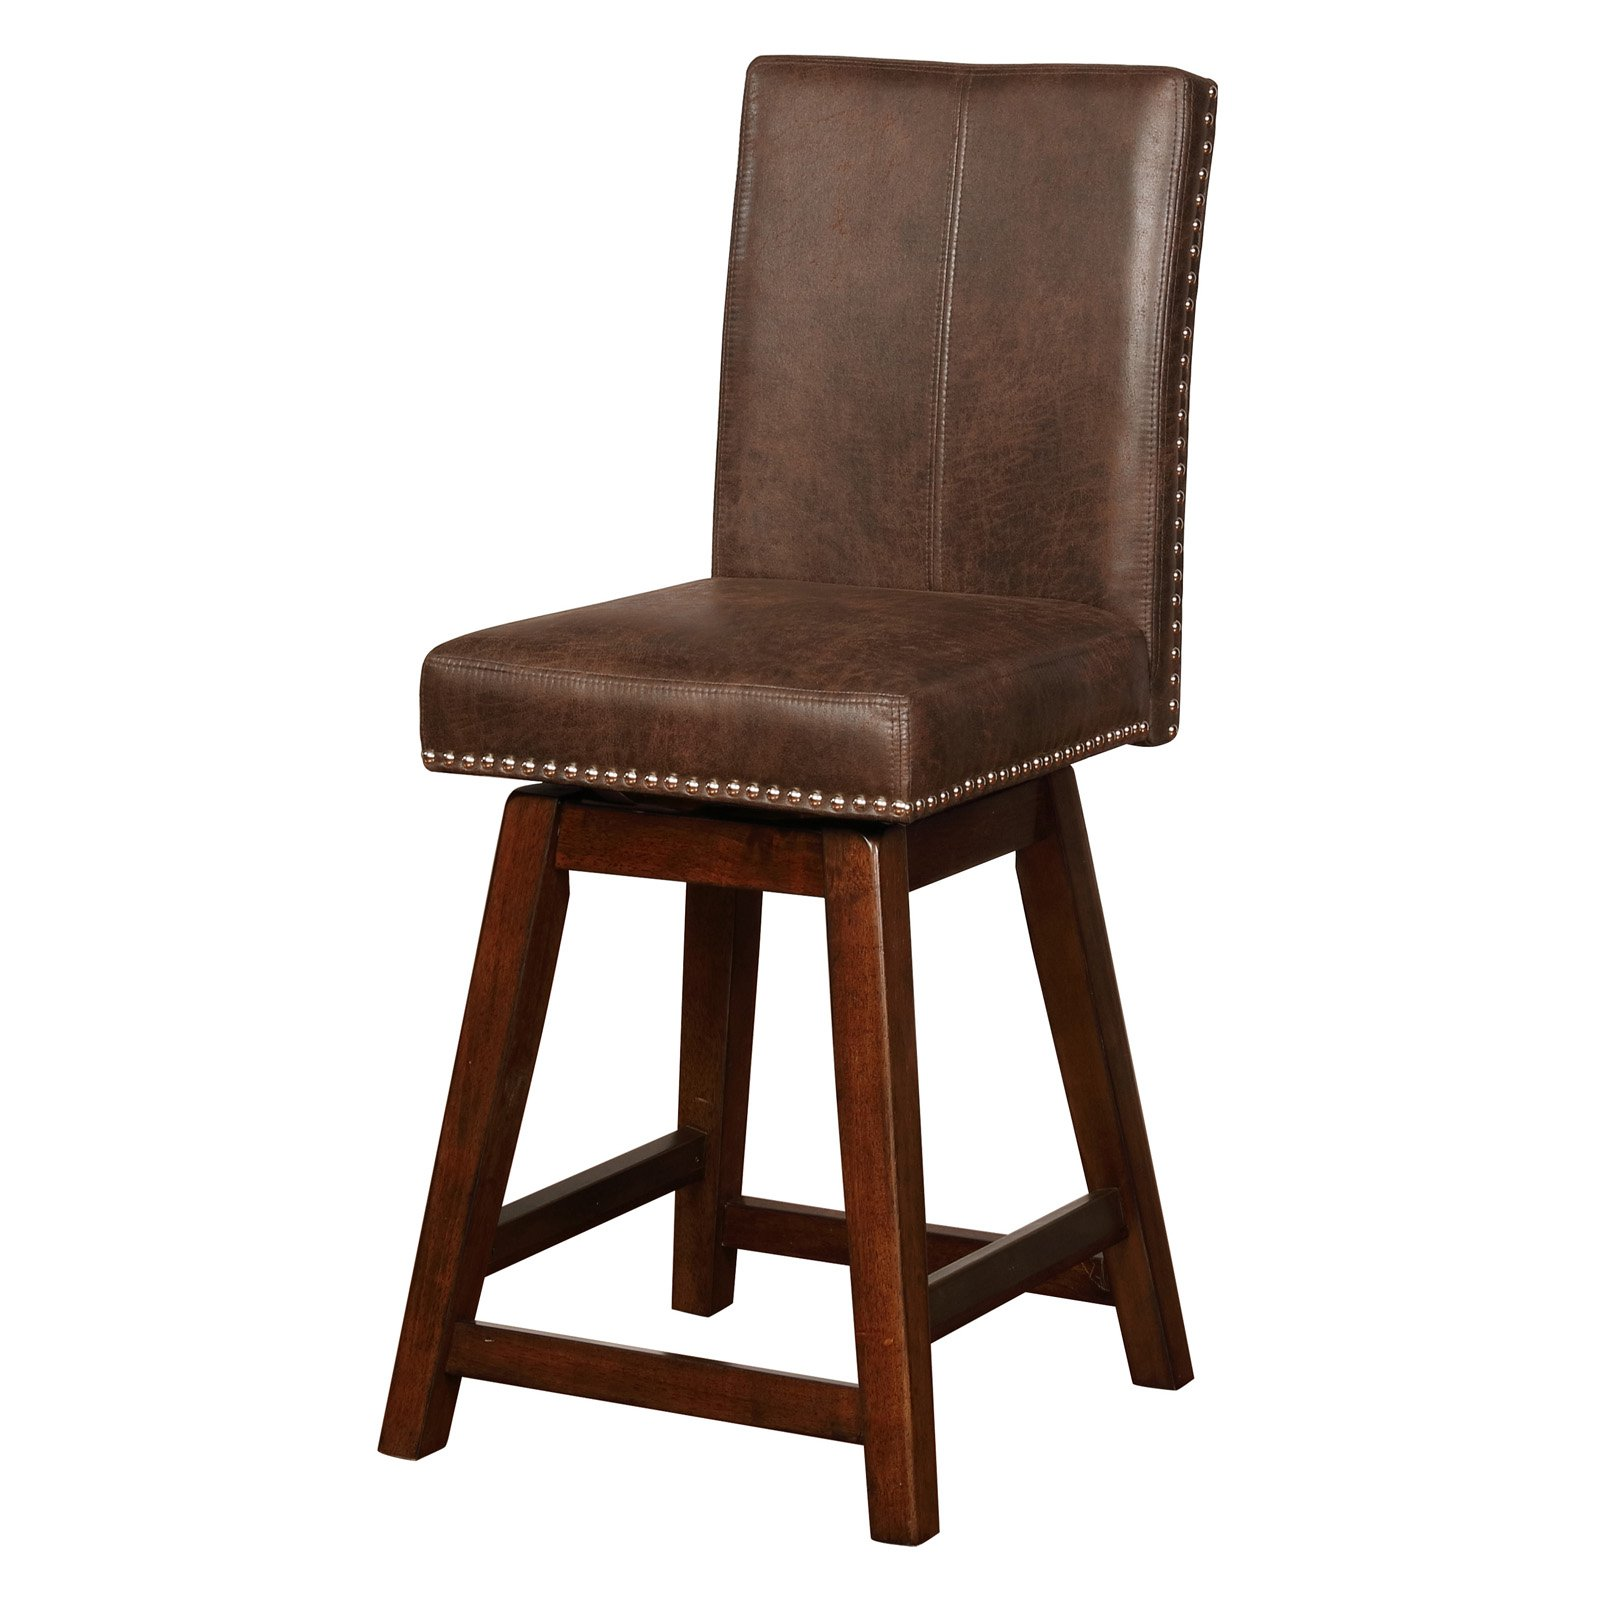 Linon Cedar Wood Swivel Counter Stool Brown 26 Inch Seat Height